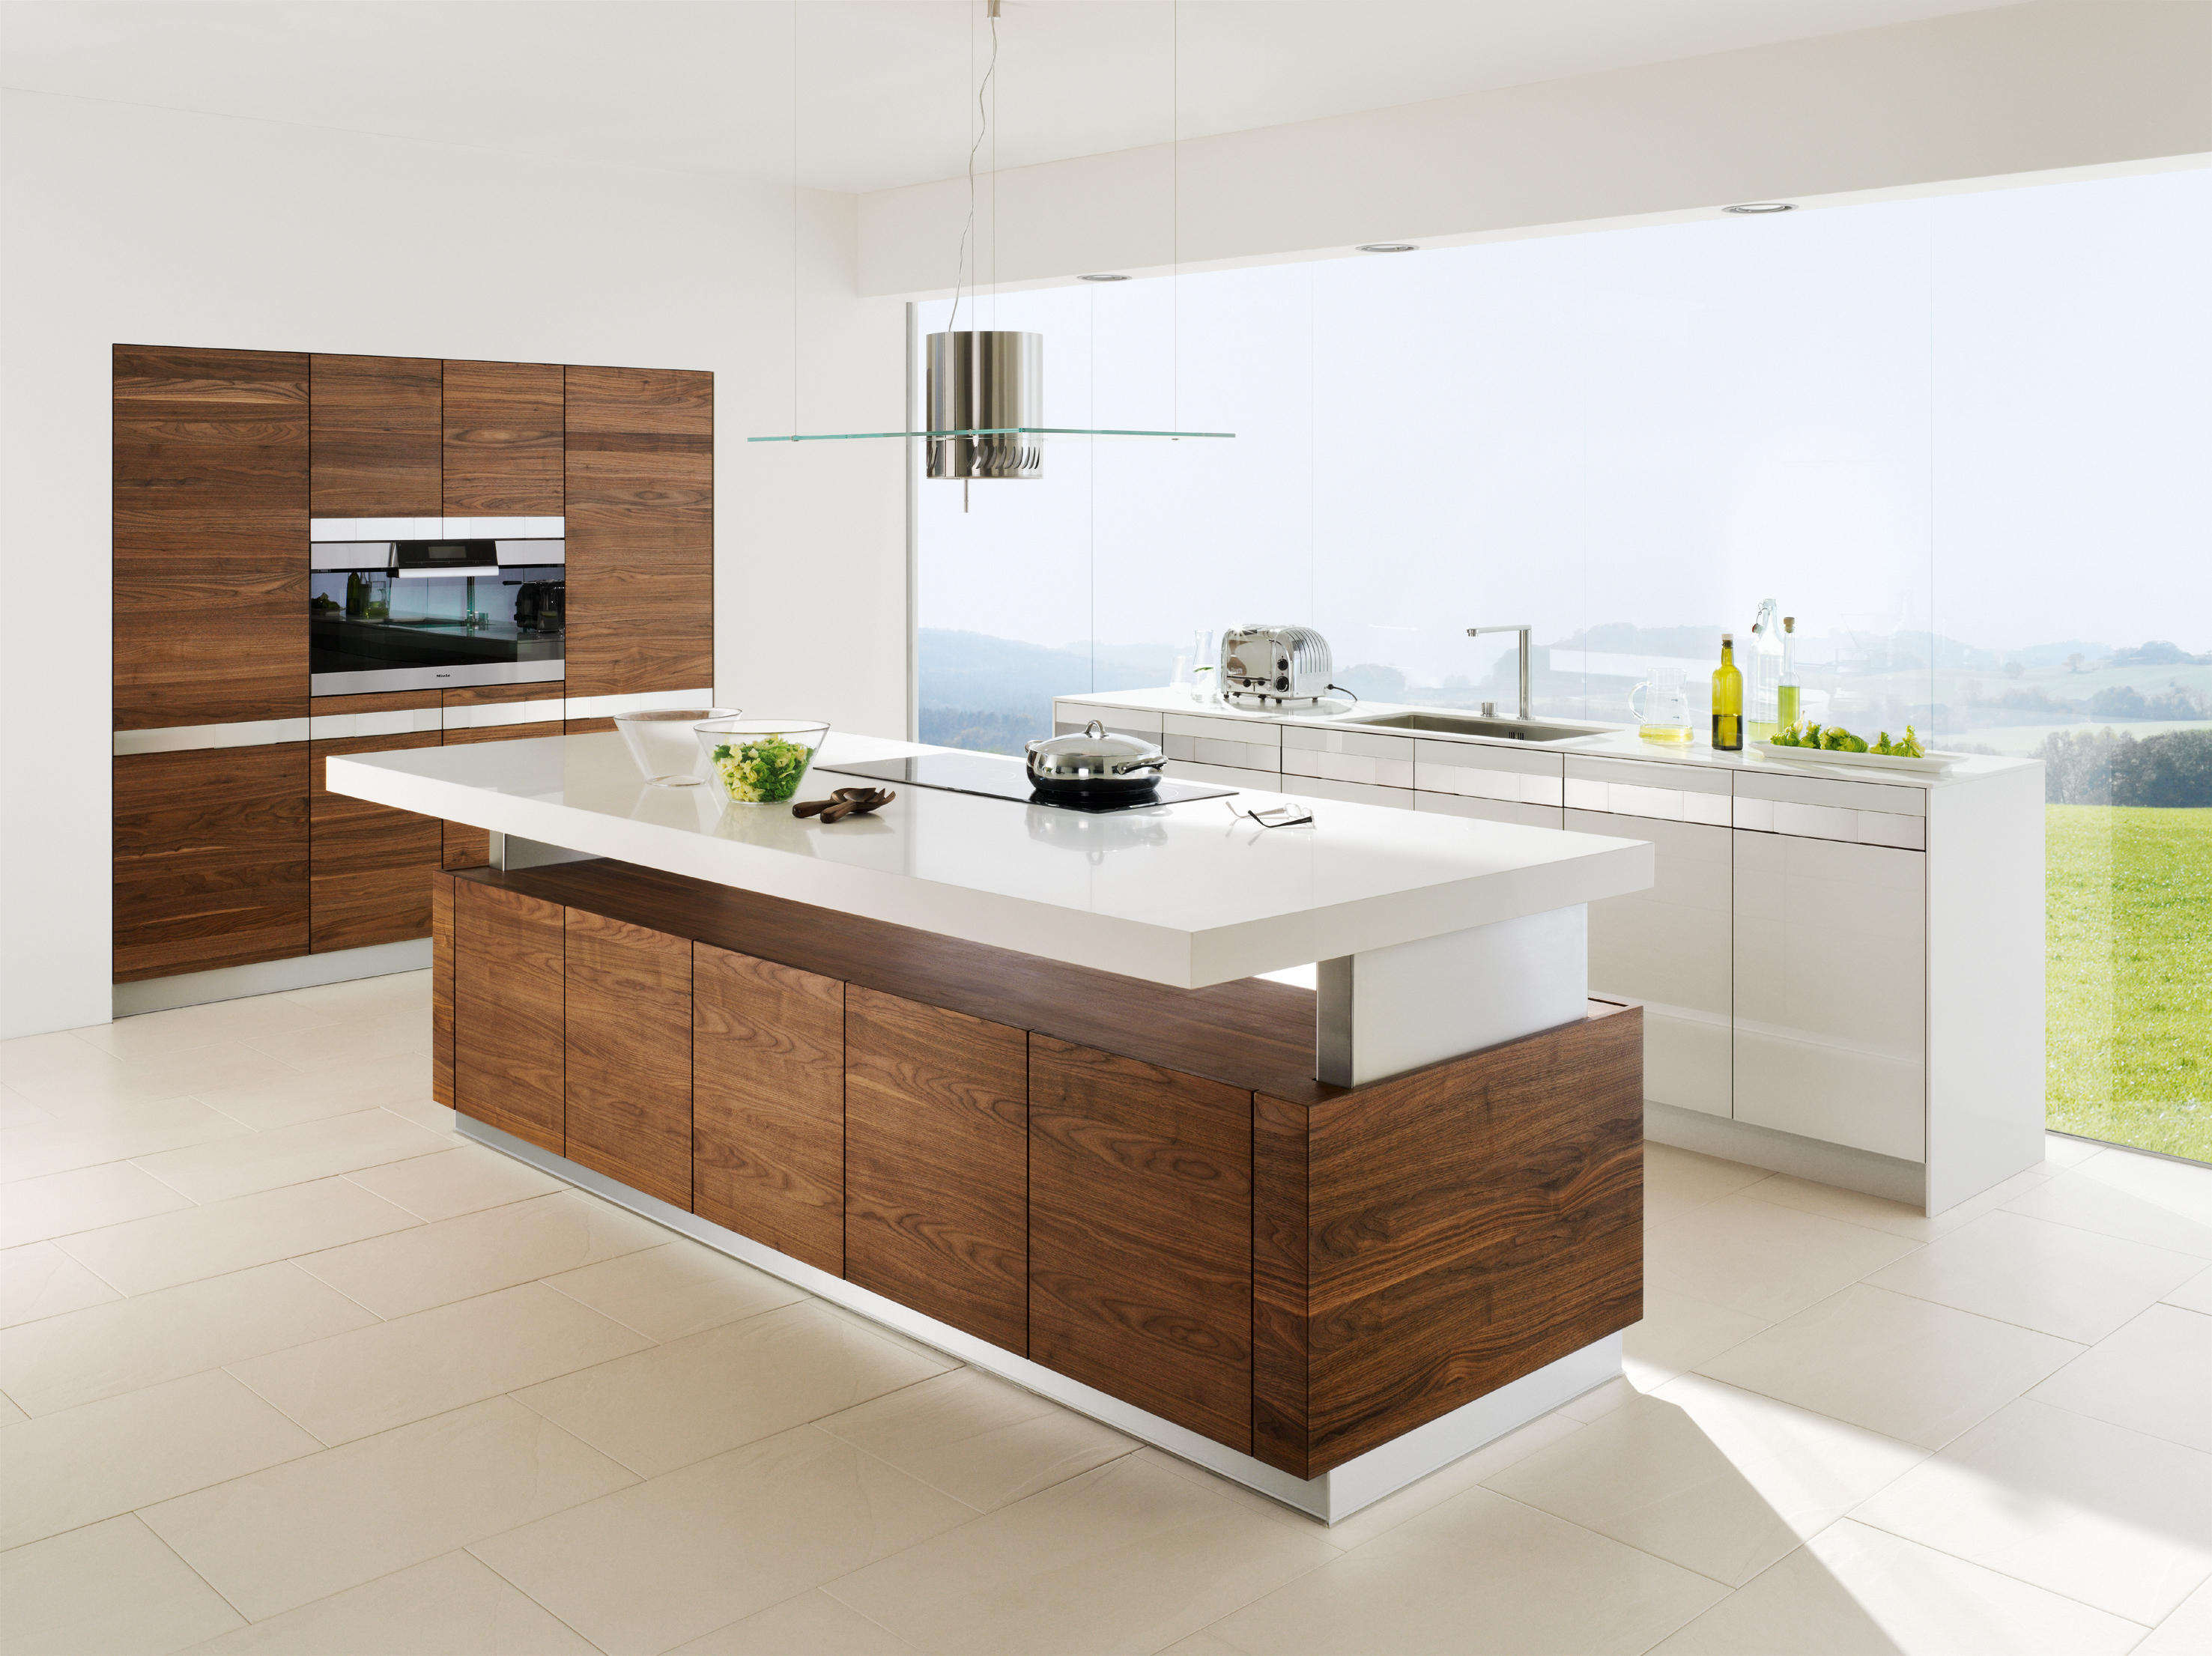 k7 cooking island - island kitchens from team 7 | architonic